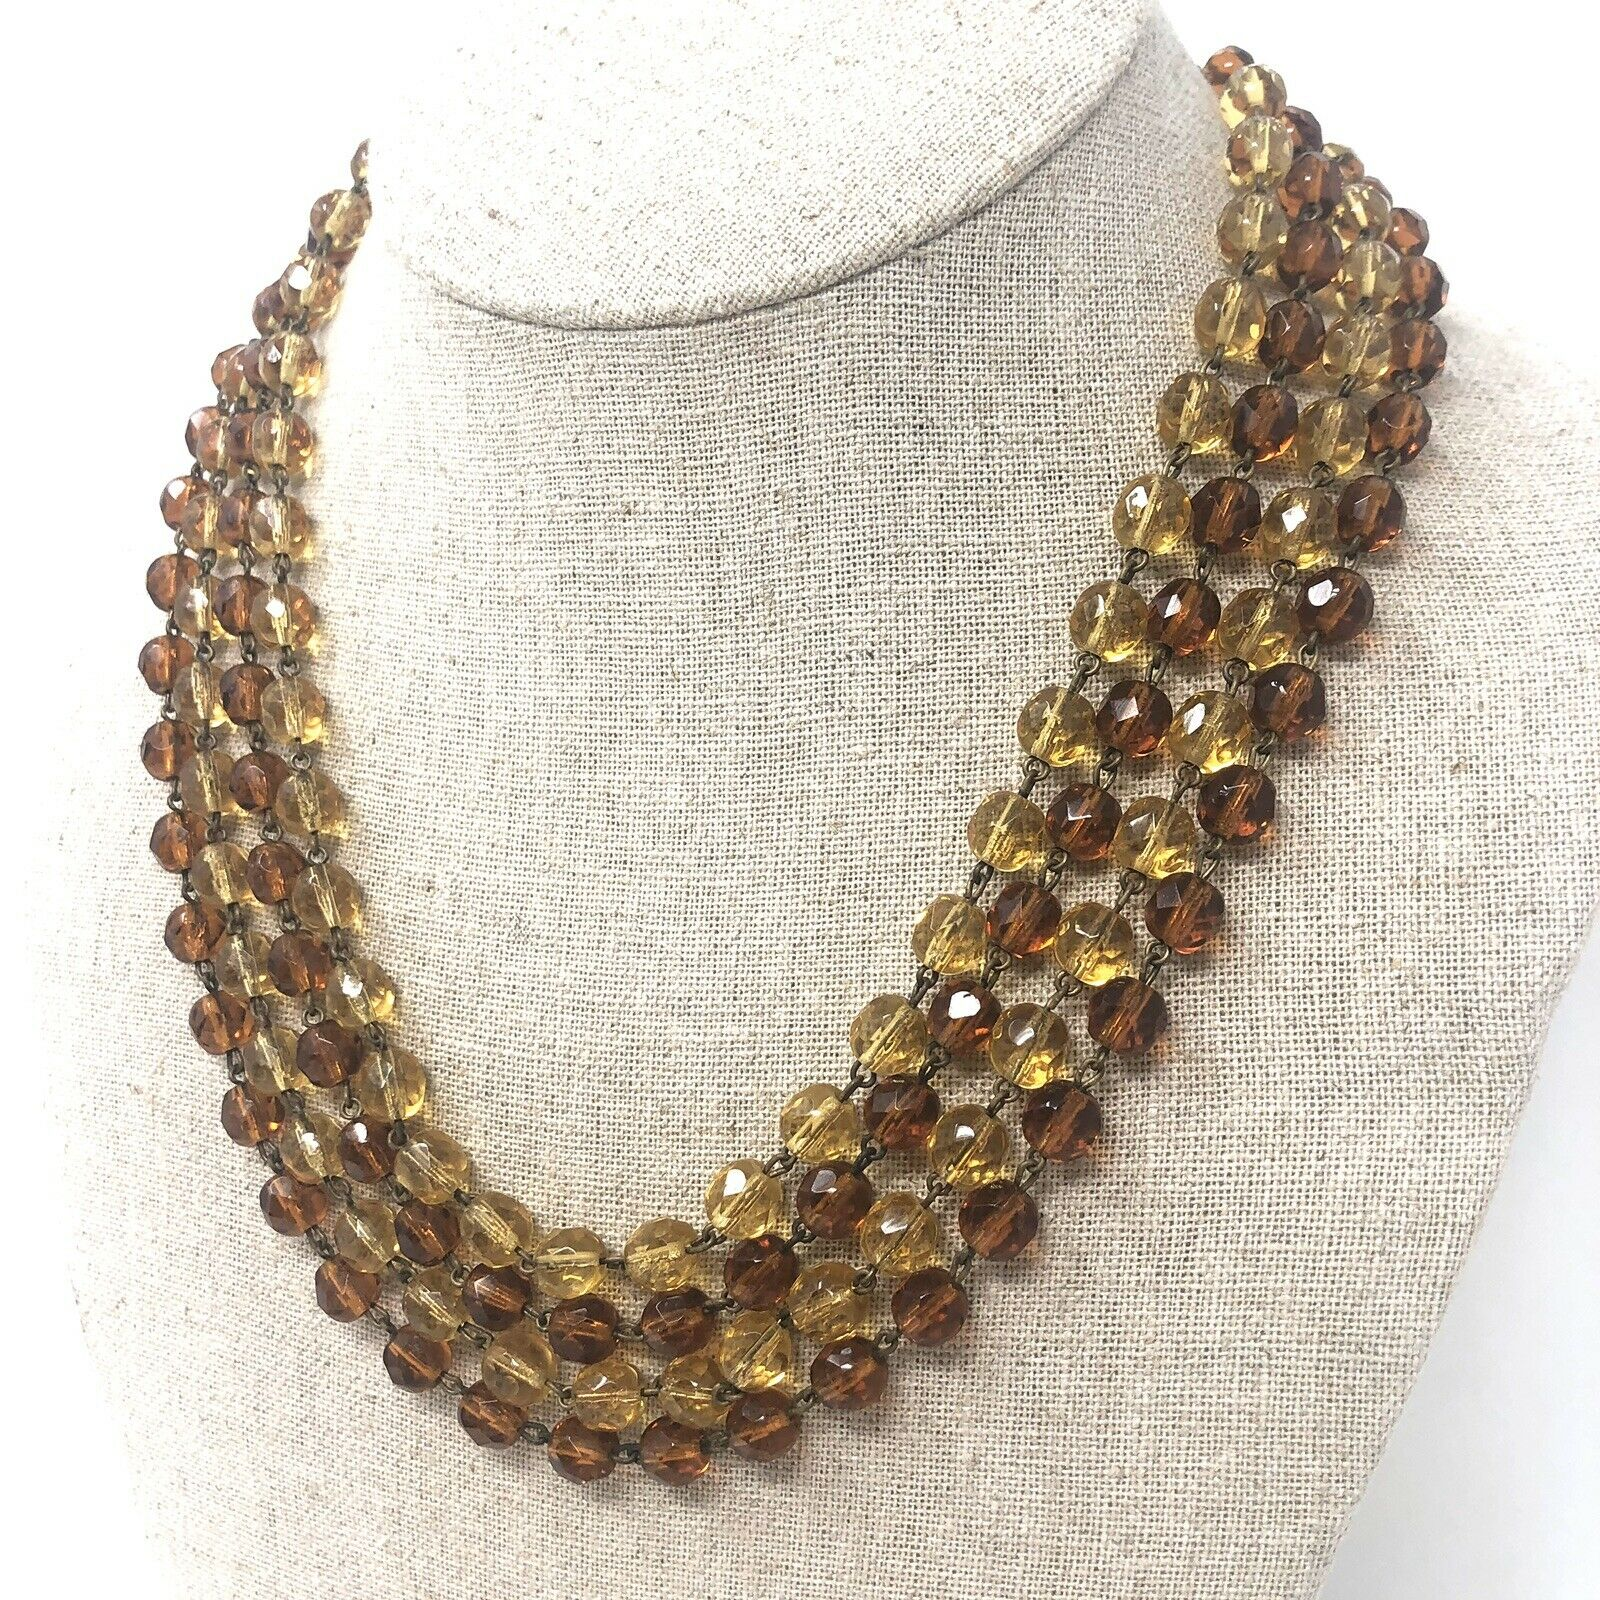 Vintage Art Deco Style Yellow Gold Tone Multi Strand Line Link Glass Beads Necklace Jewelry K#4